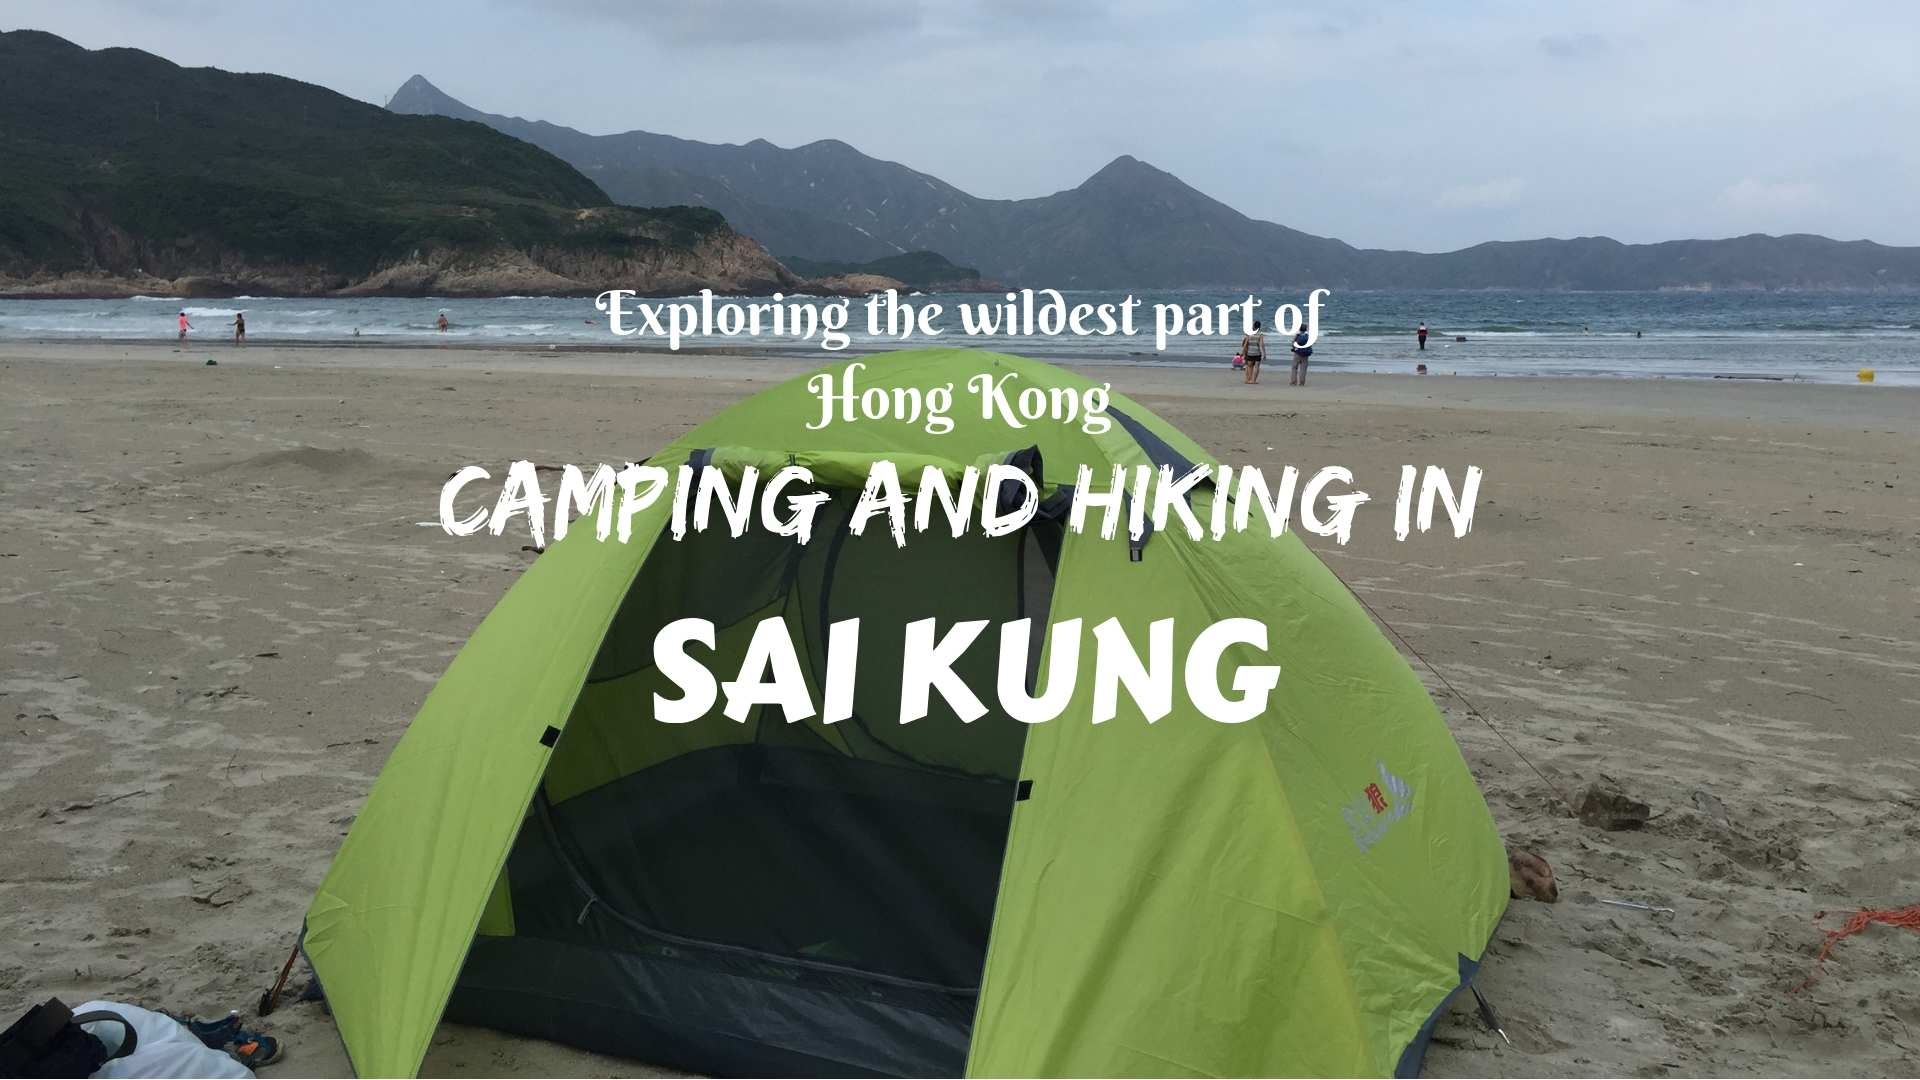 EXPLORING THE WILDEST PART OF HONG KONG- CAMPING AND HIKING IN SAI KUNG